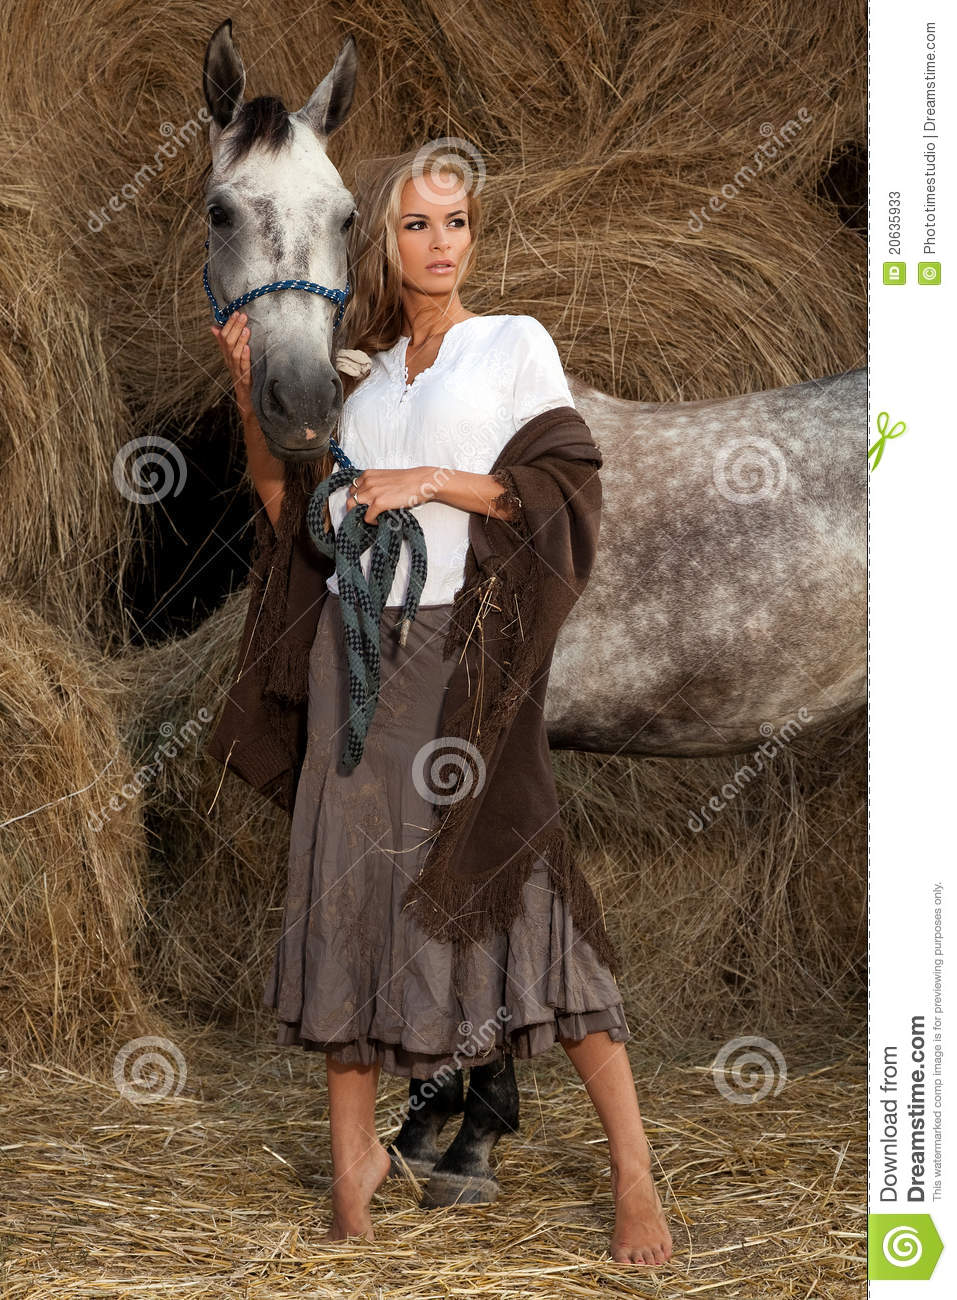 Pretty Girl Wallpapers Free Blond Woman With Horse Stock Photos Image 20635933